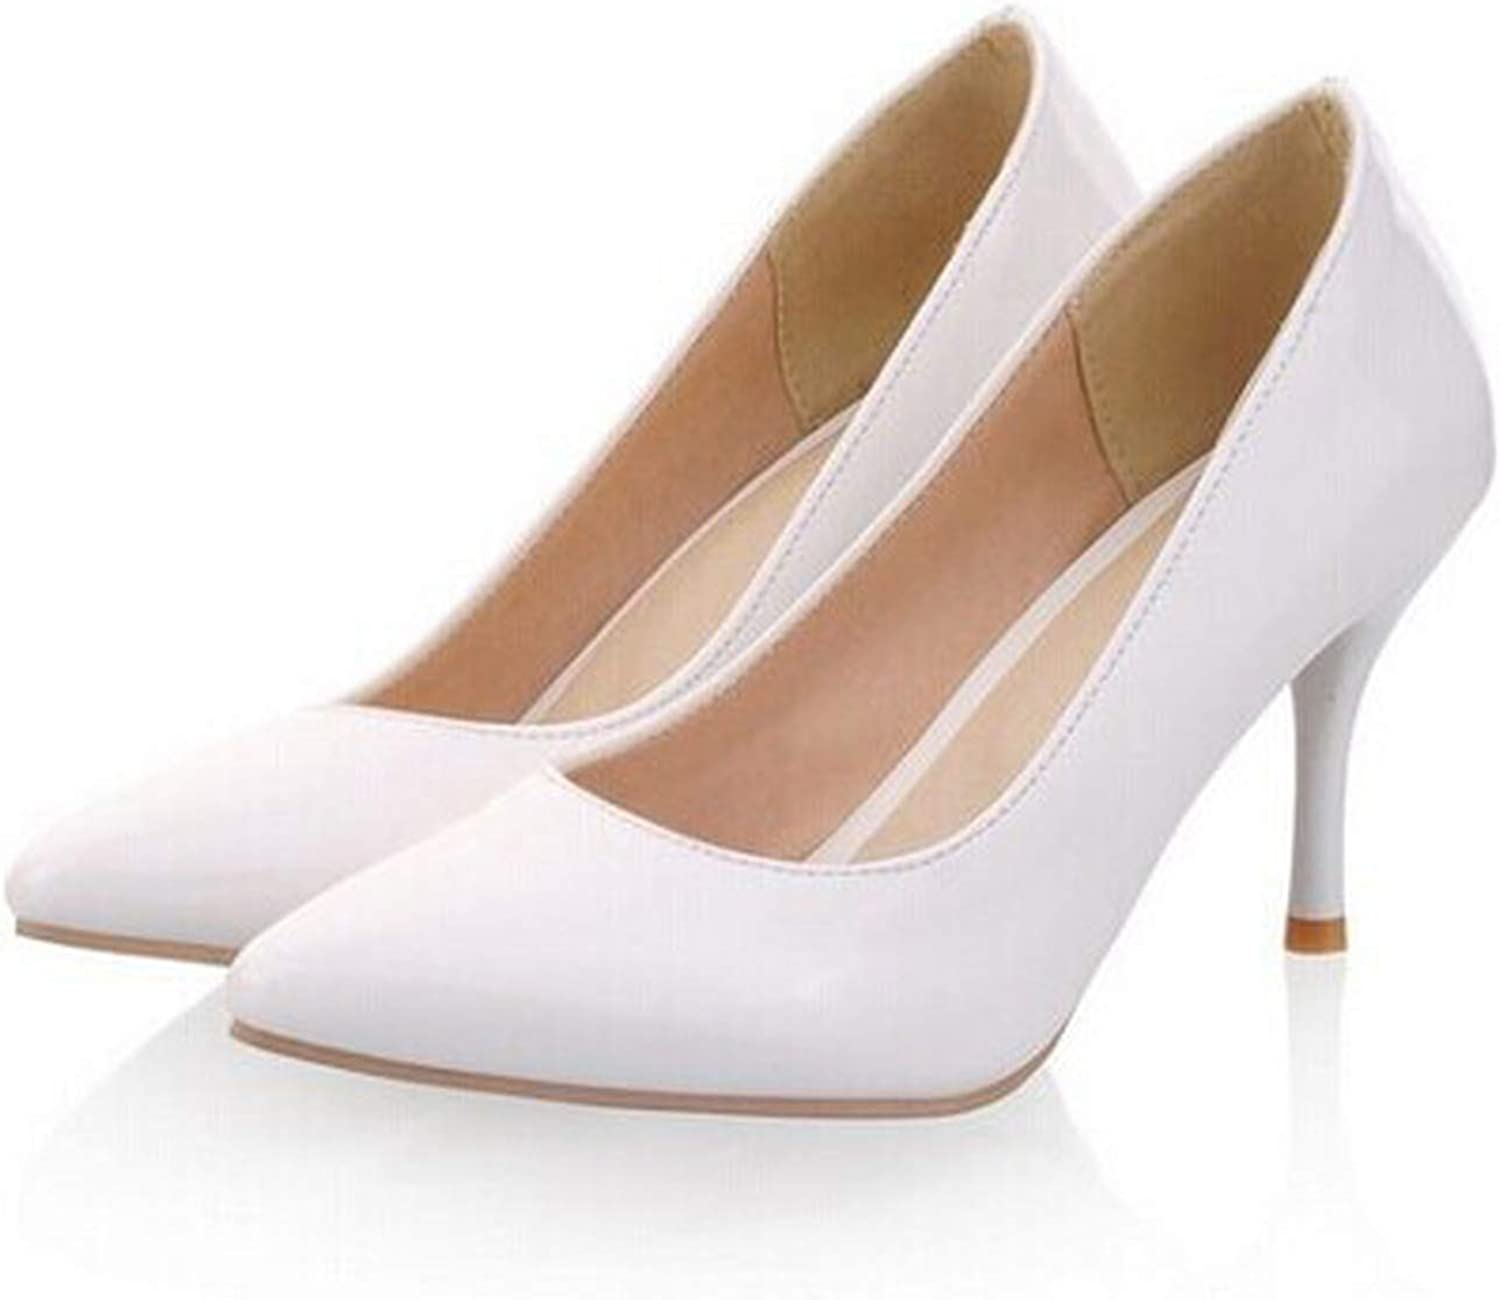 High Heels Women Pumps Thin Heel Classic White red Nude Beige Sexy Ladies Wedding shoes,White,15